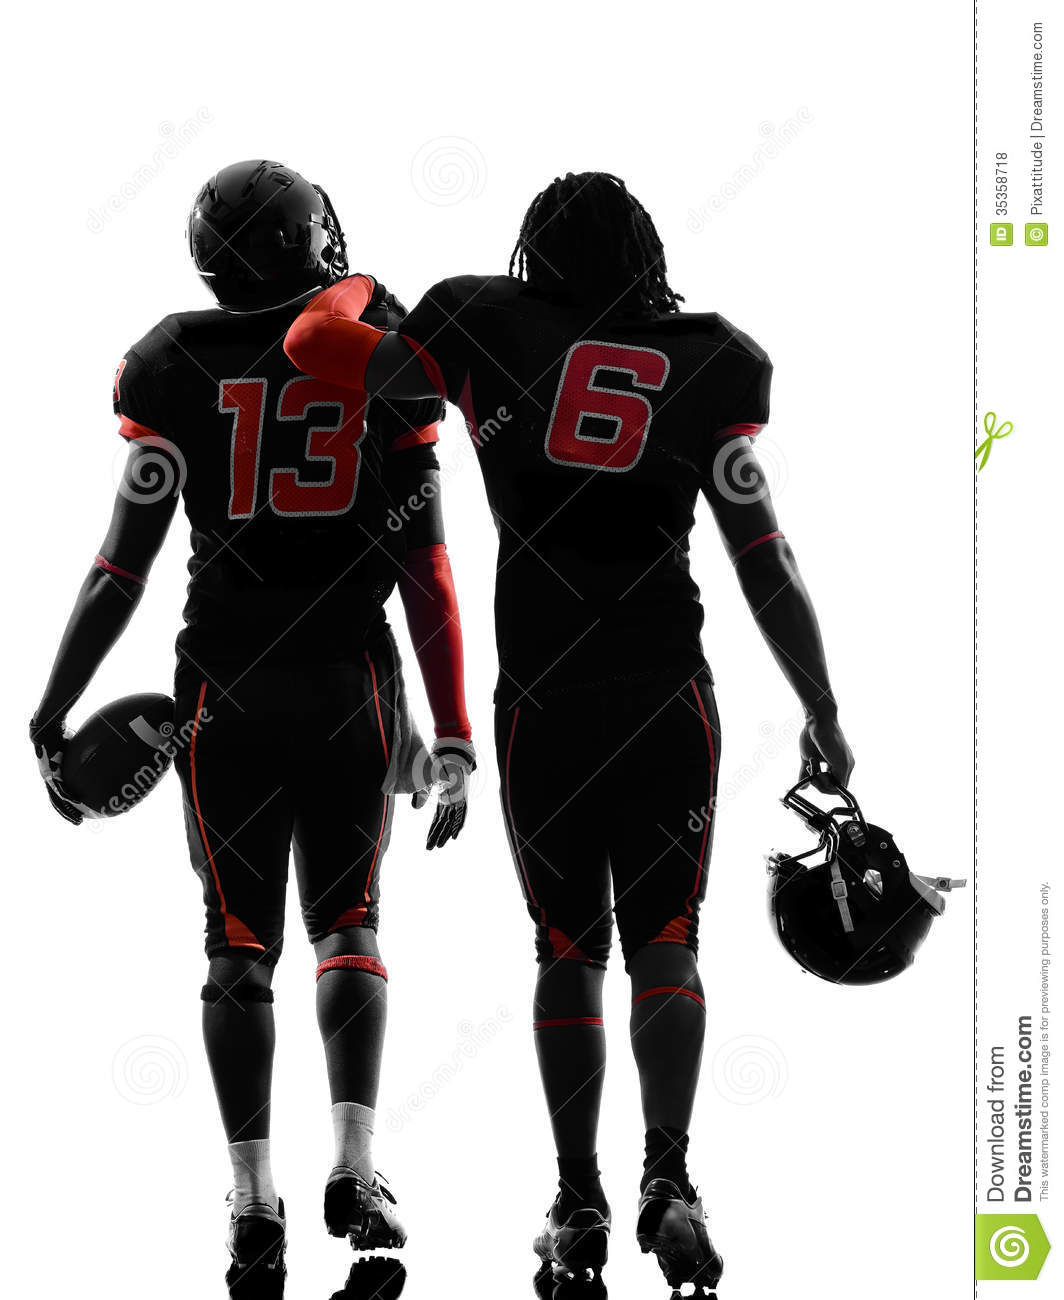 Royalty Free Stock Photos: Two american football players walking rear ...